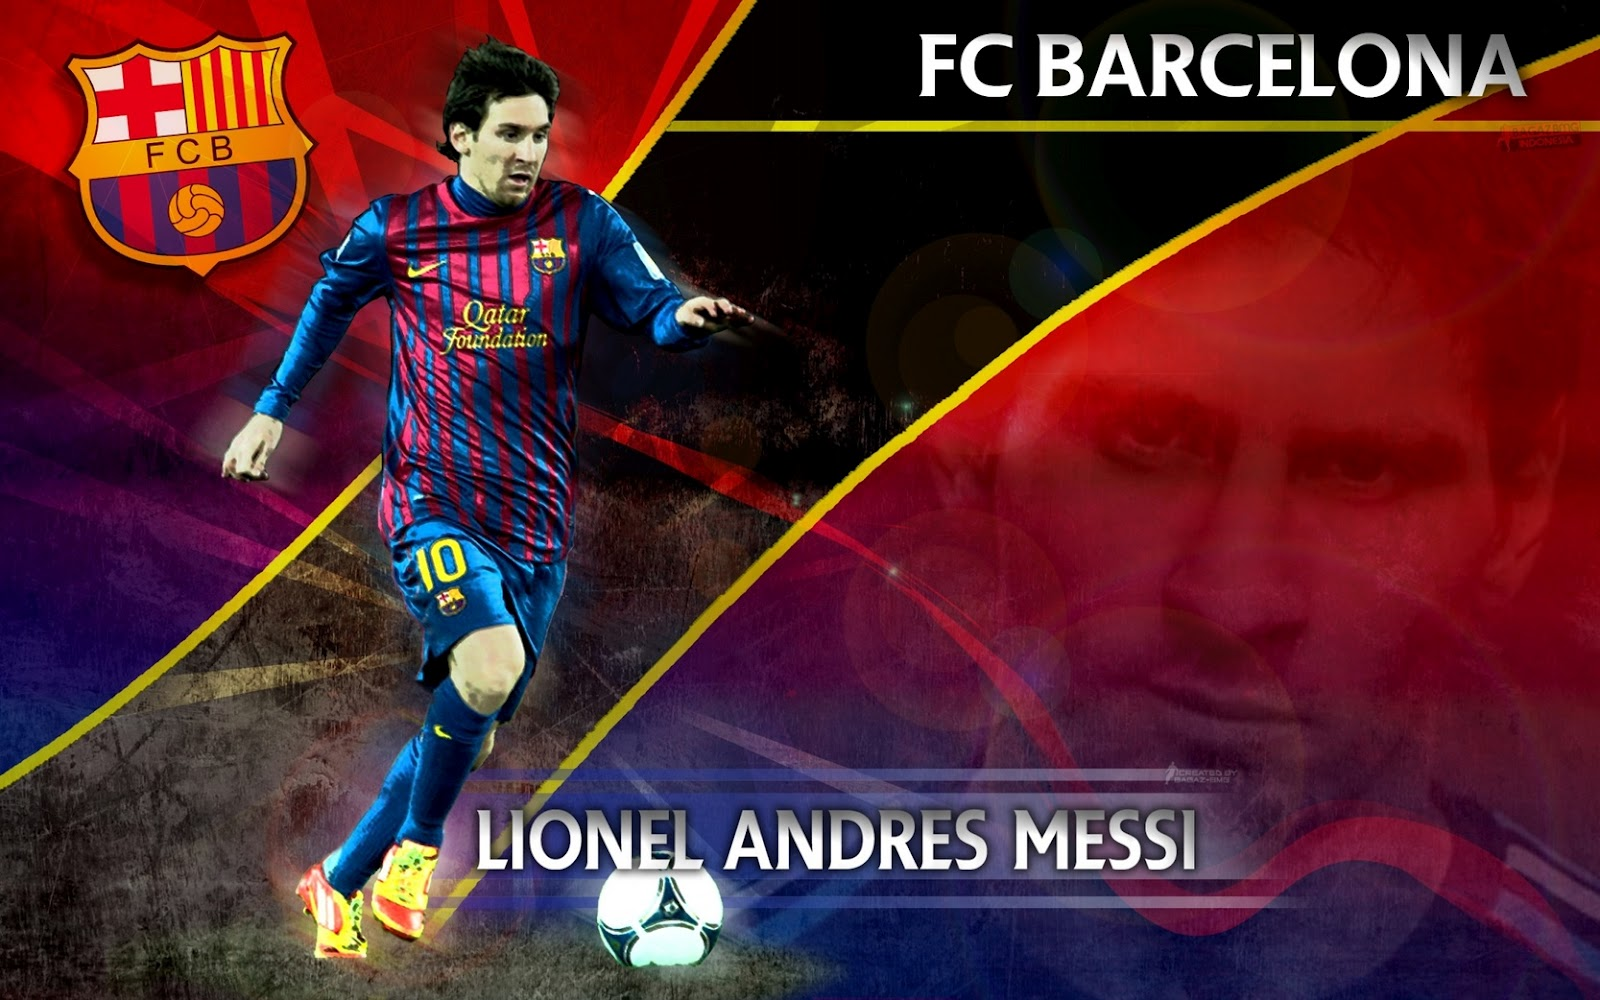 Foto Profil Lionel Messi Wallpaper Terbaru Berita Terkini picture wallpaper image